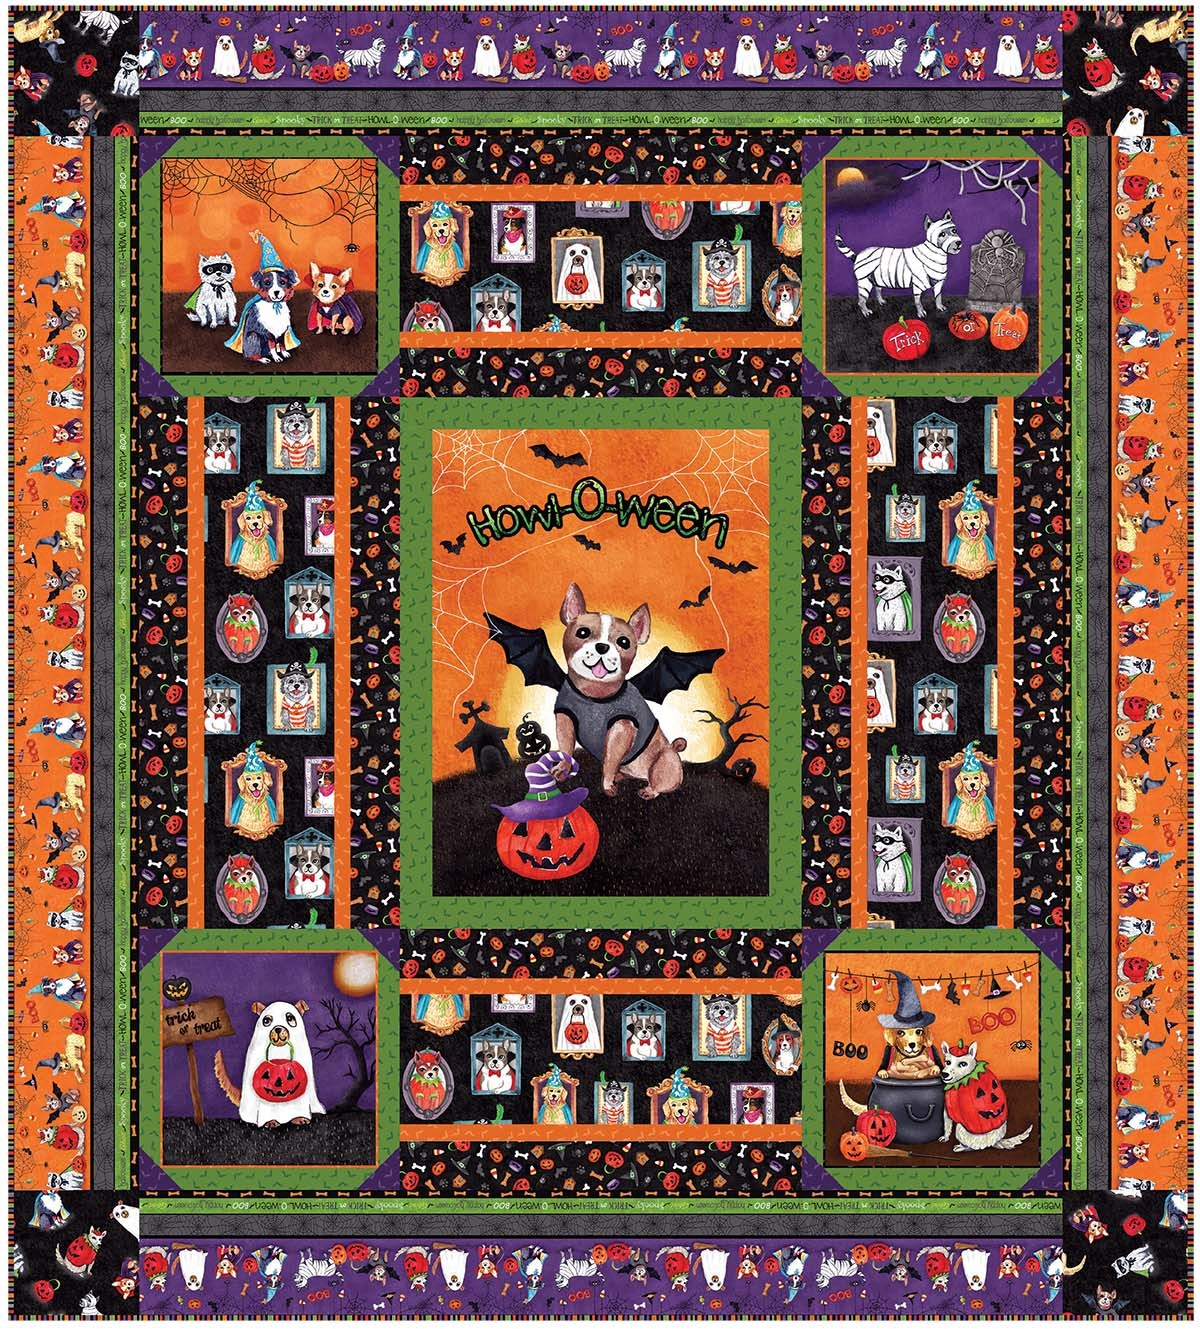 """""""Howl-o-Ween"""" Free Halloween Quilt Pattern designed by Heidi Pridemore from Michael Miller Fabrics"""